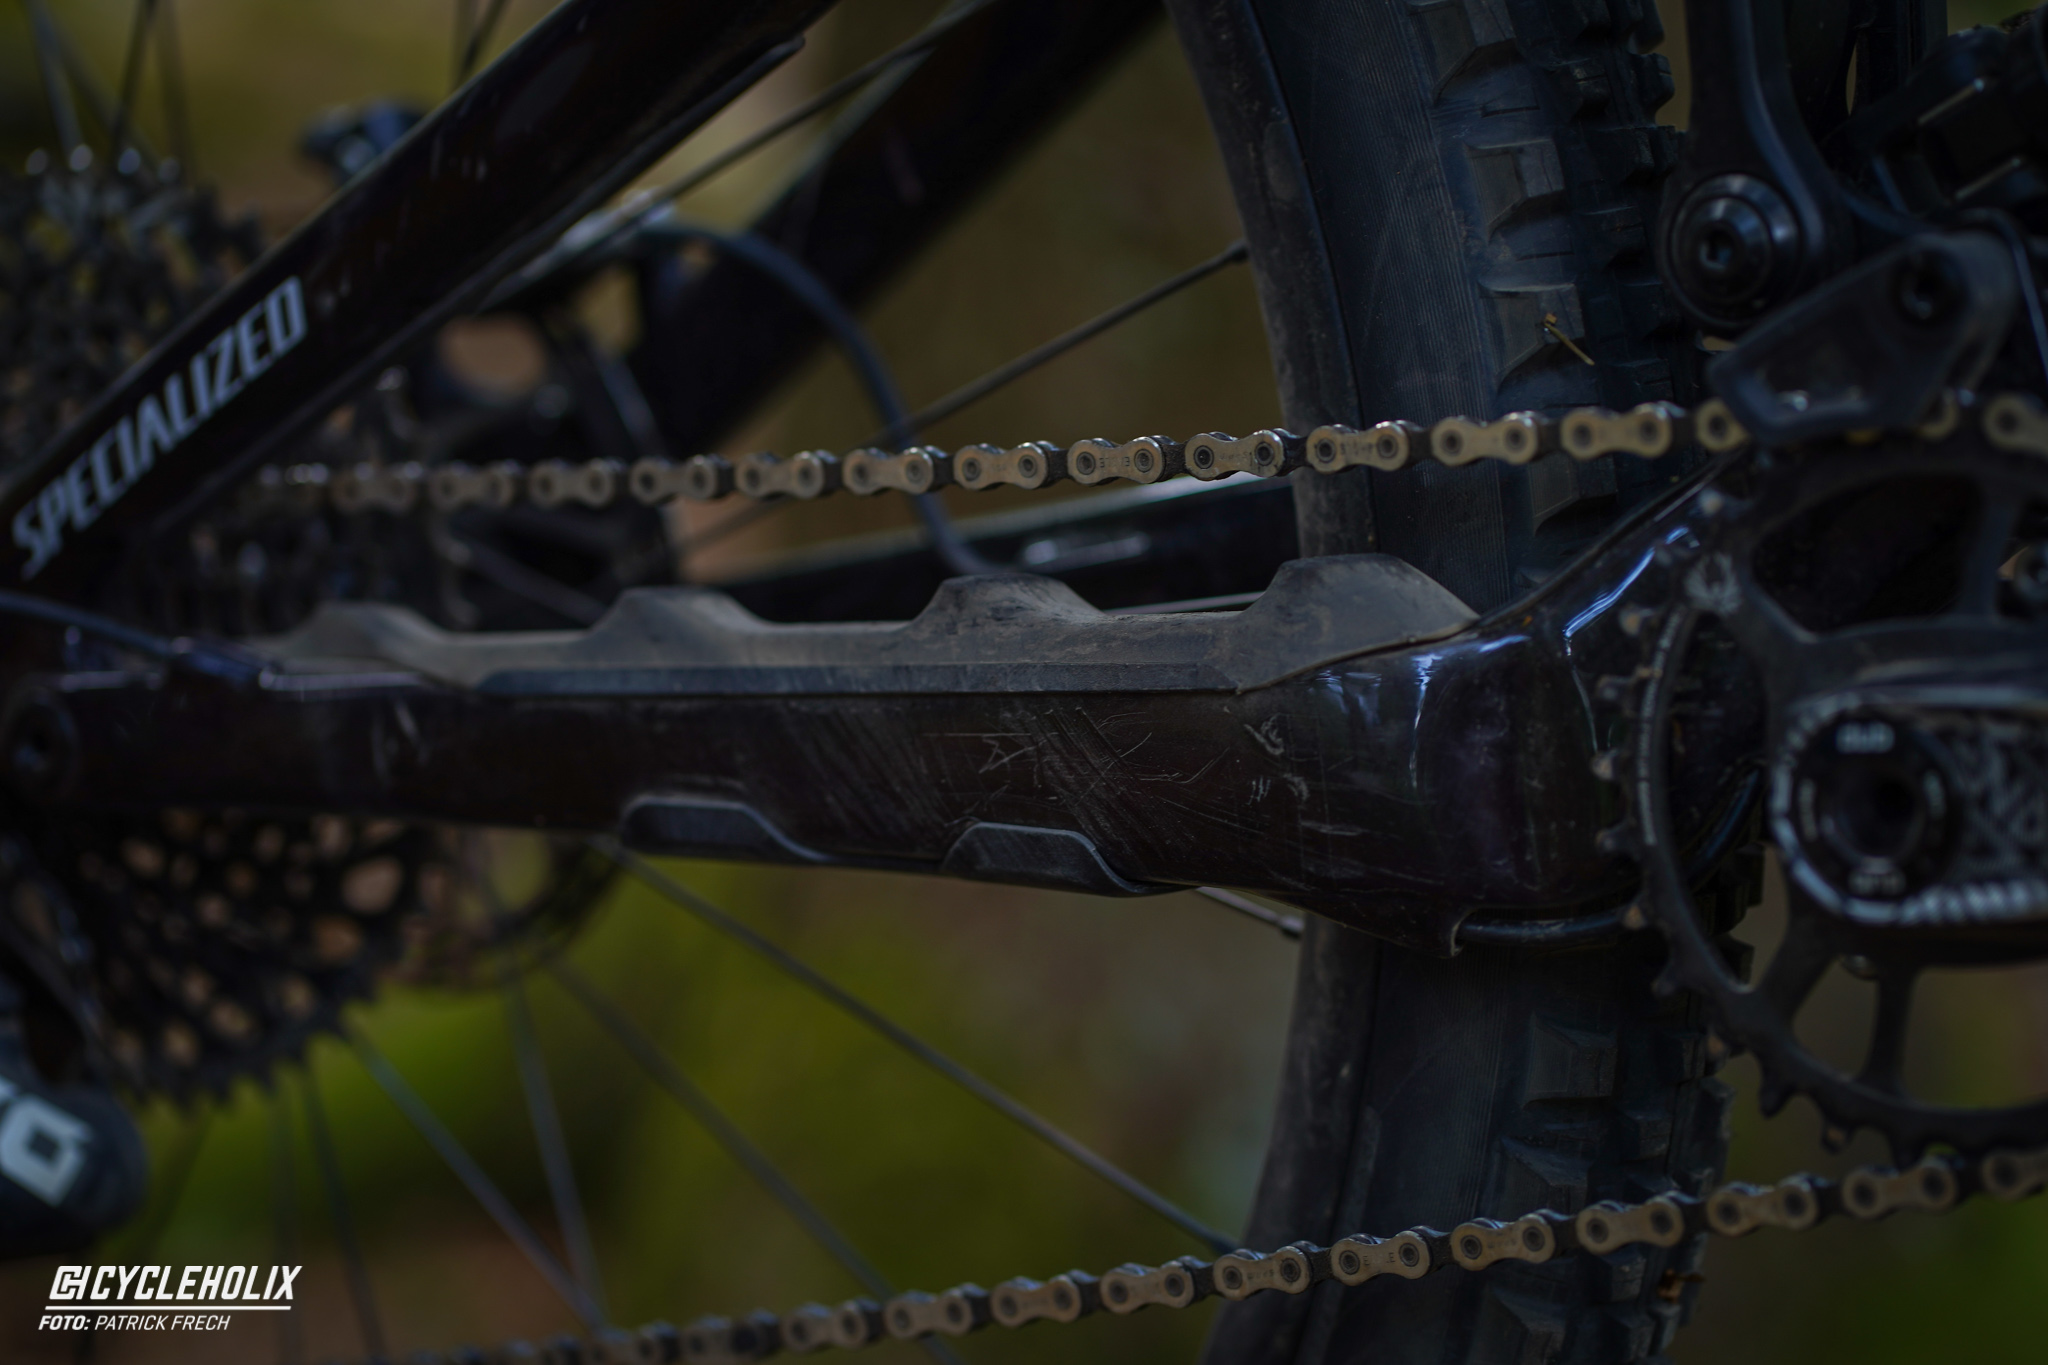 Specialized Enduro Expert 2020 - chain stay protector